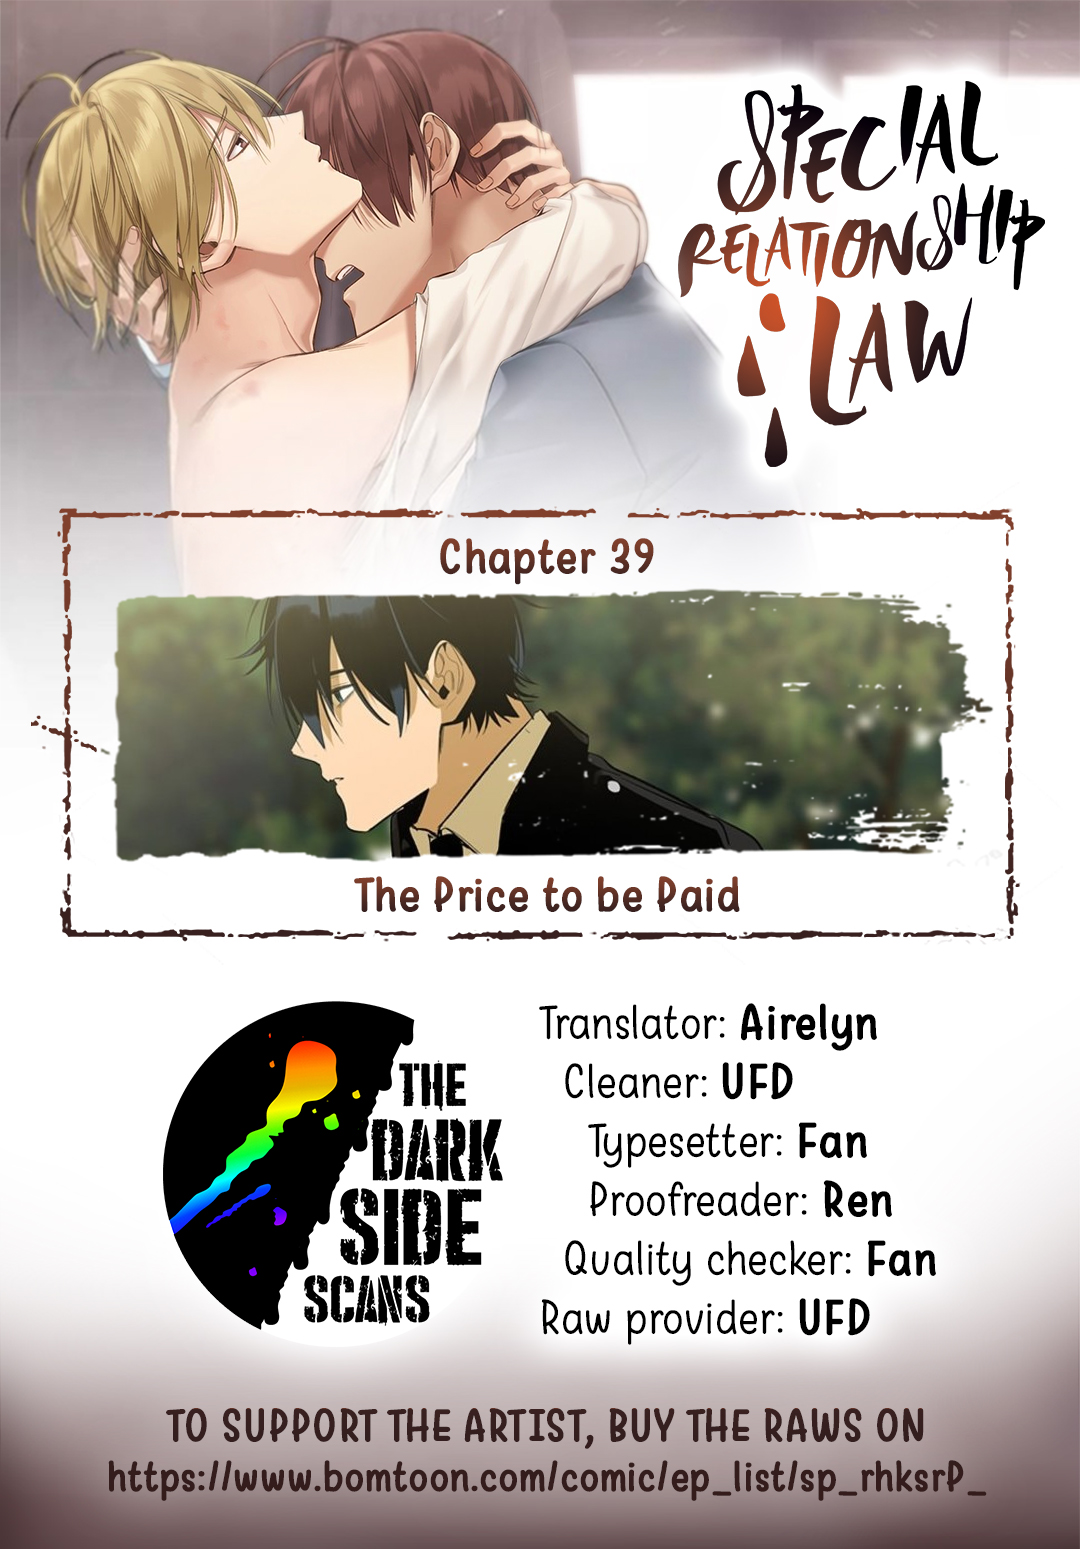 Special Relationship Law Ch. 39 The Price to be Paid